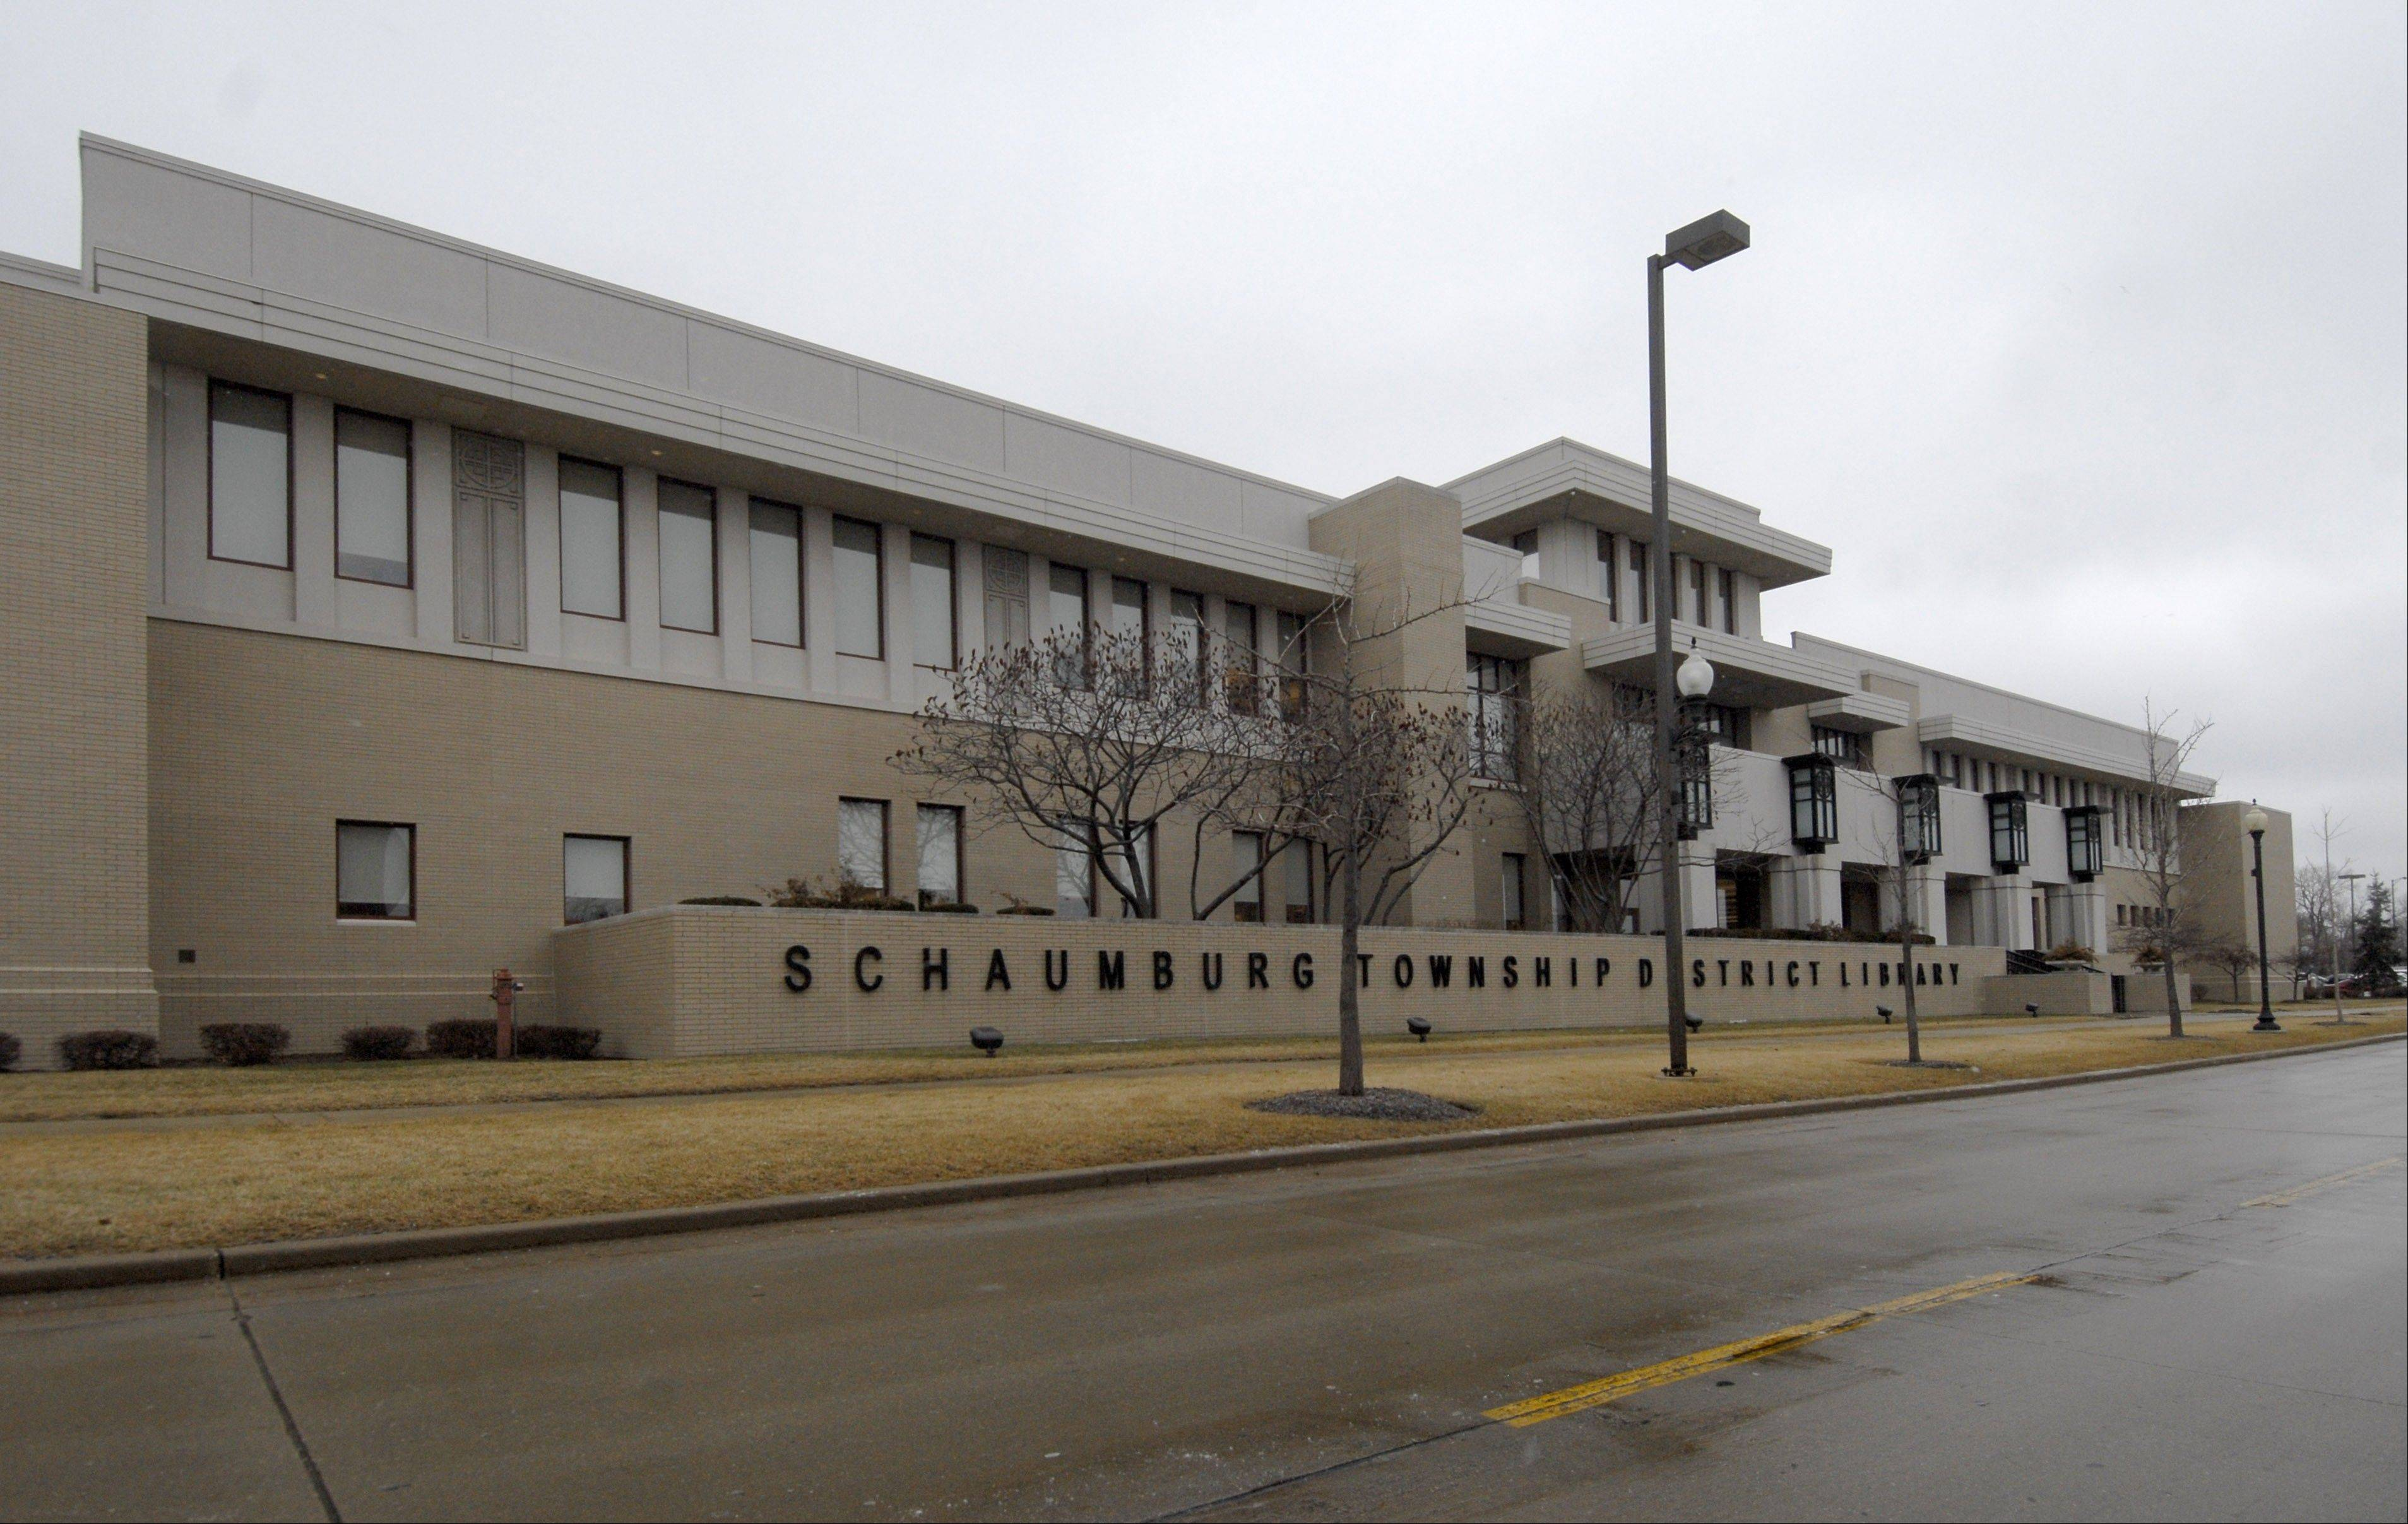 The Schaumburg Township District Library, at Schaumburg and Roselle Road.